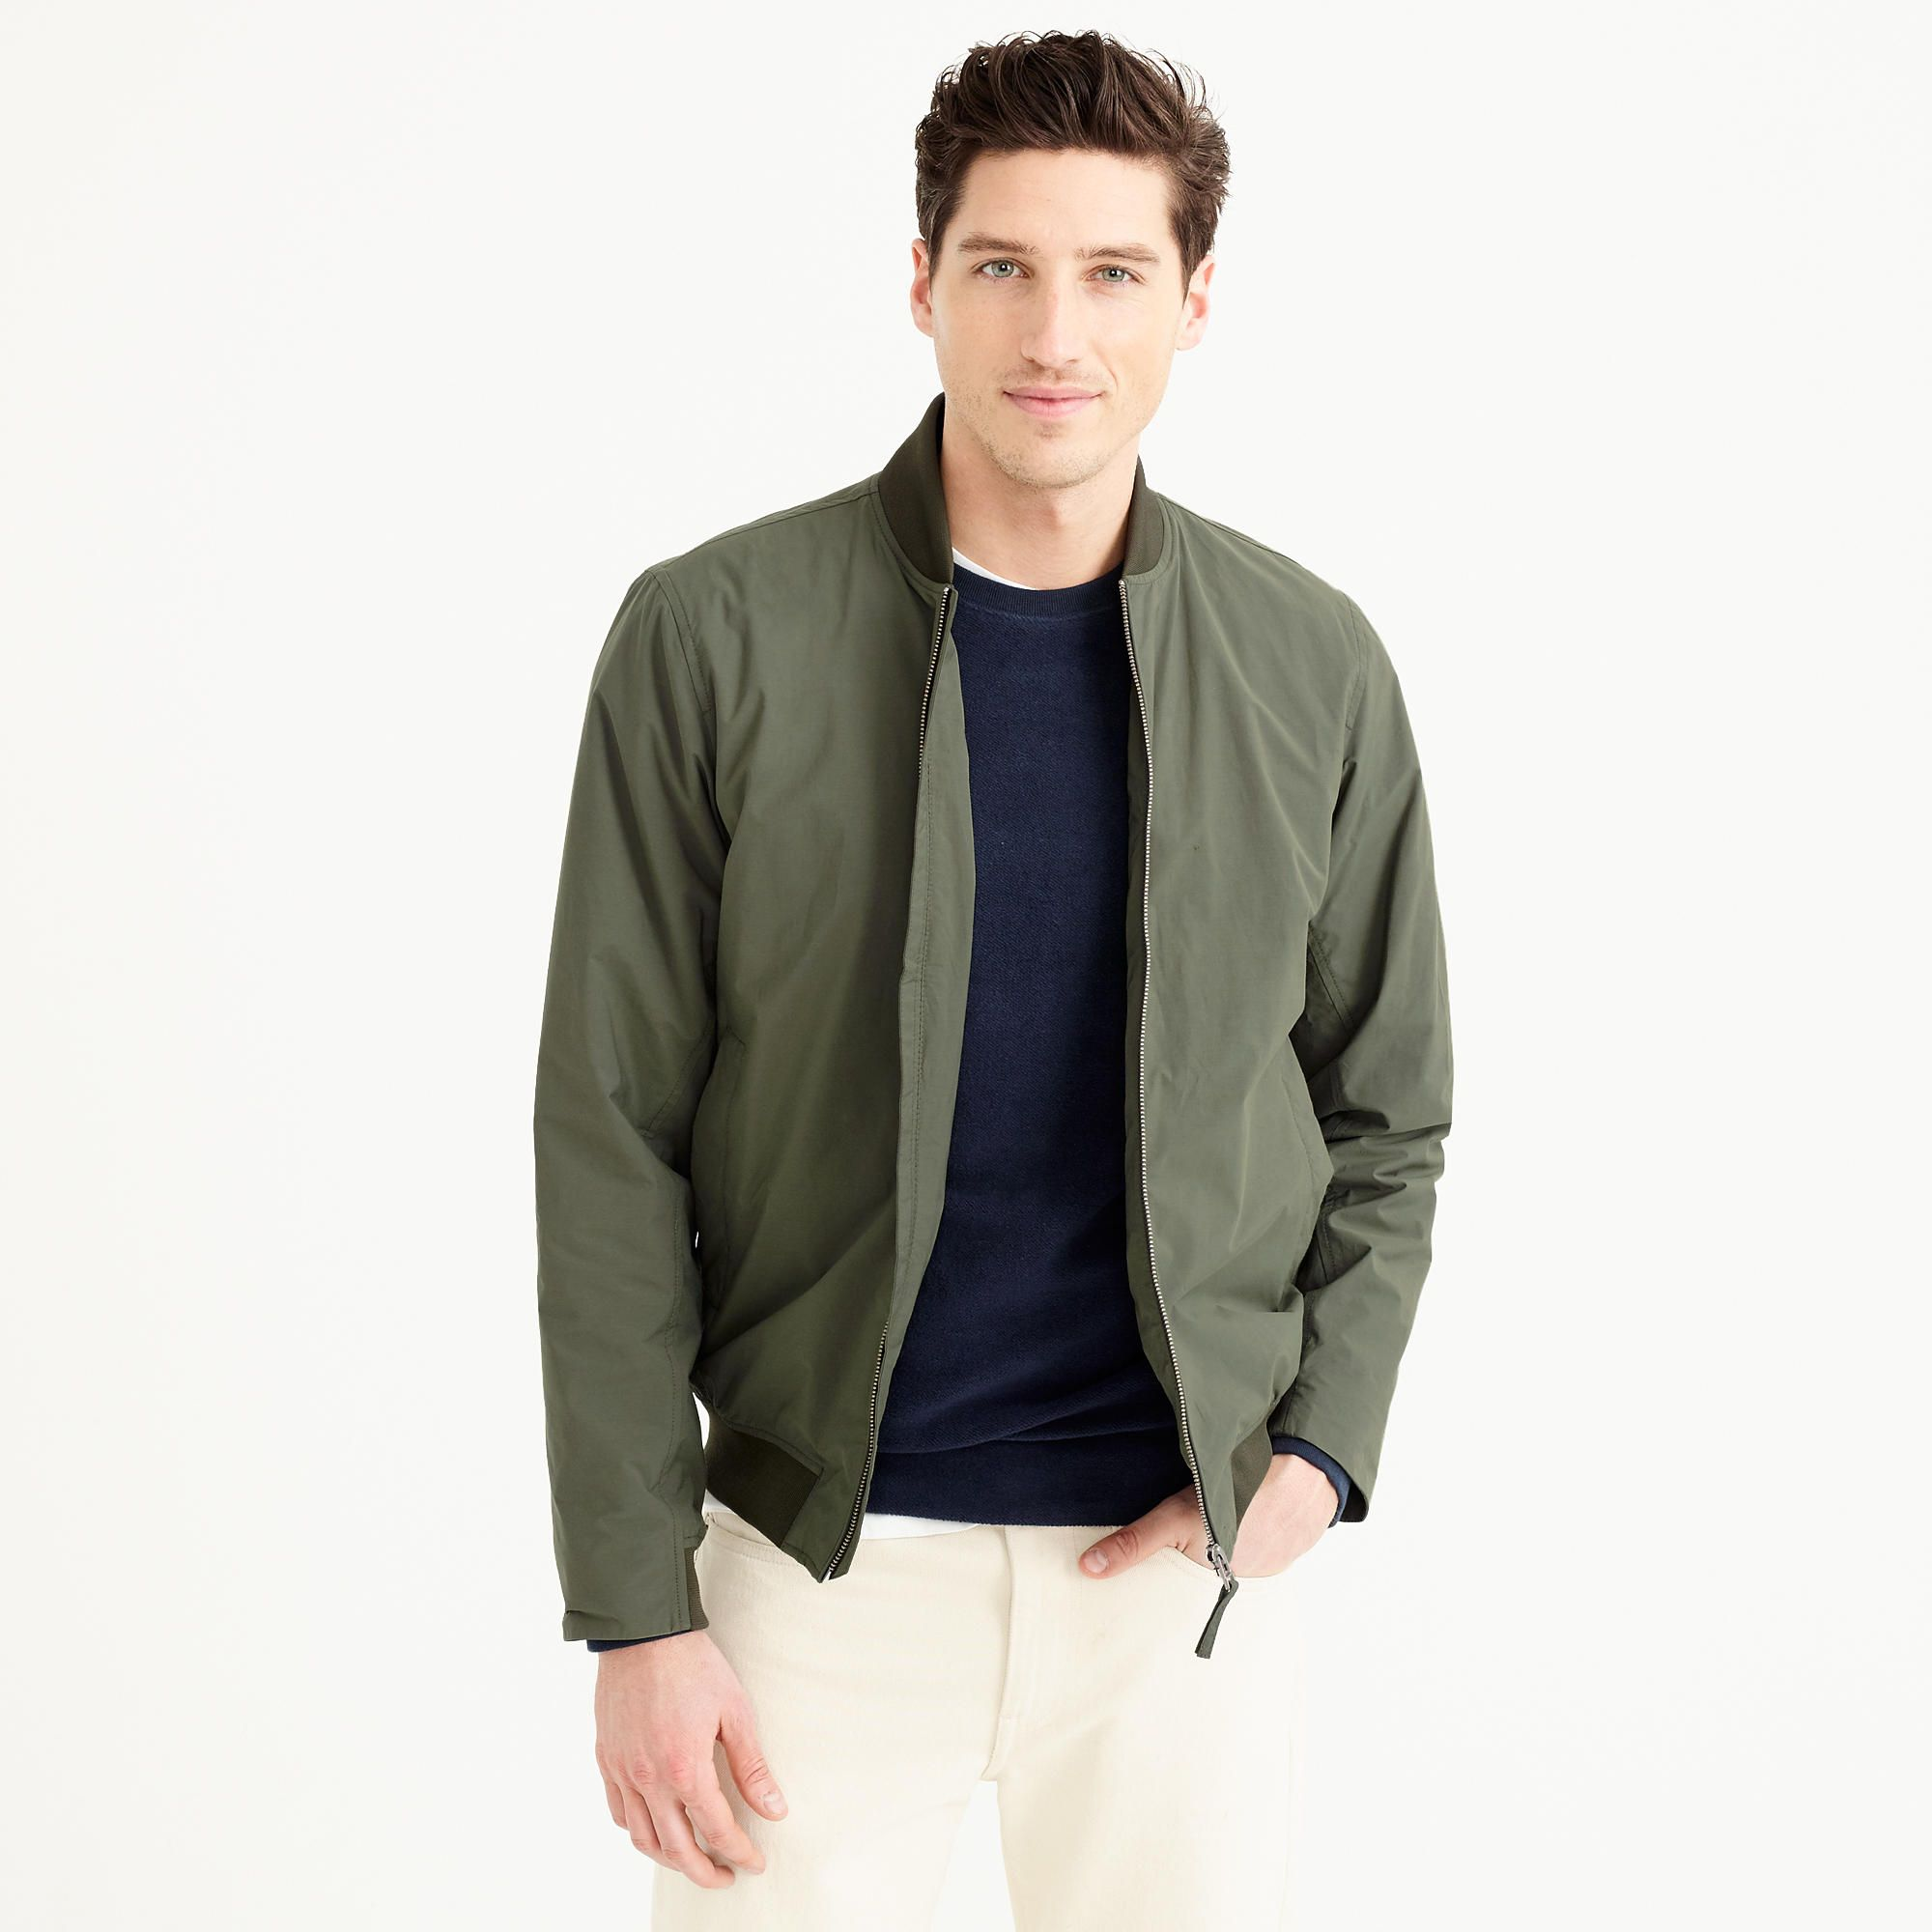 Norse Projects™ Ryan cotton bomber jacket : Men J.Crew in good company